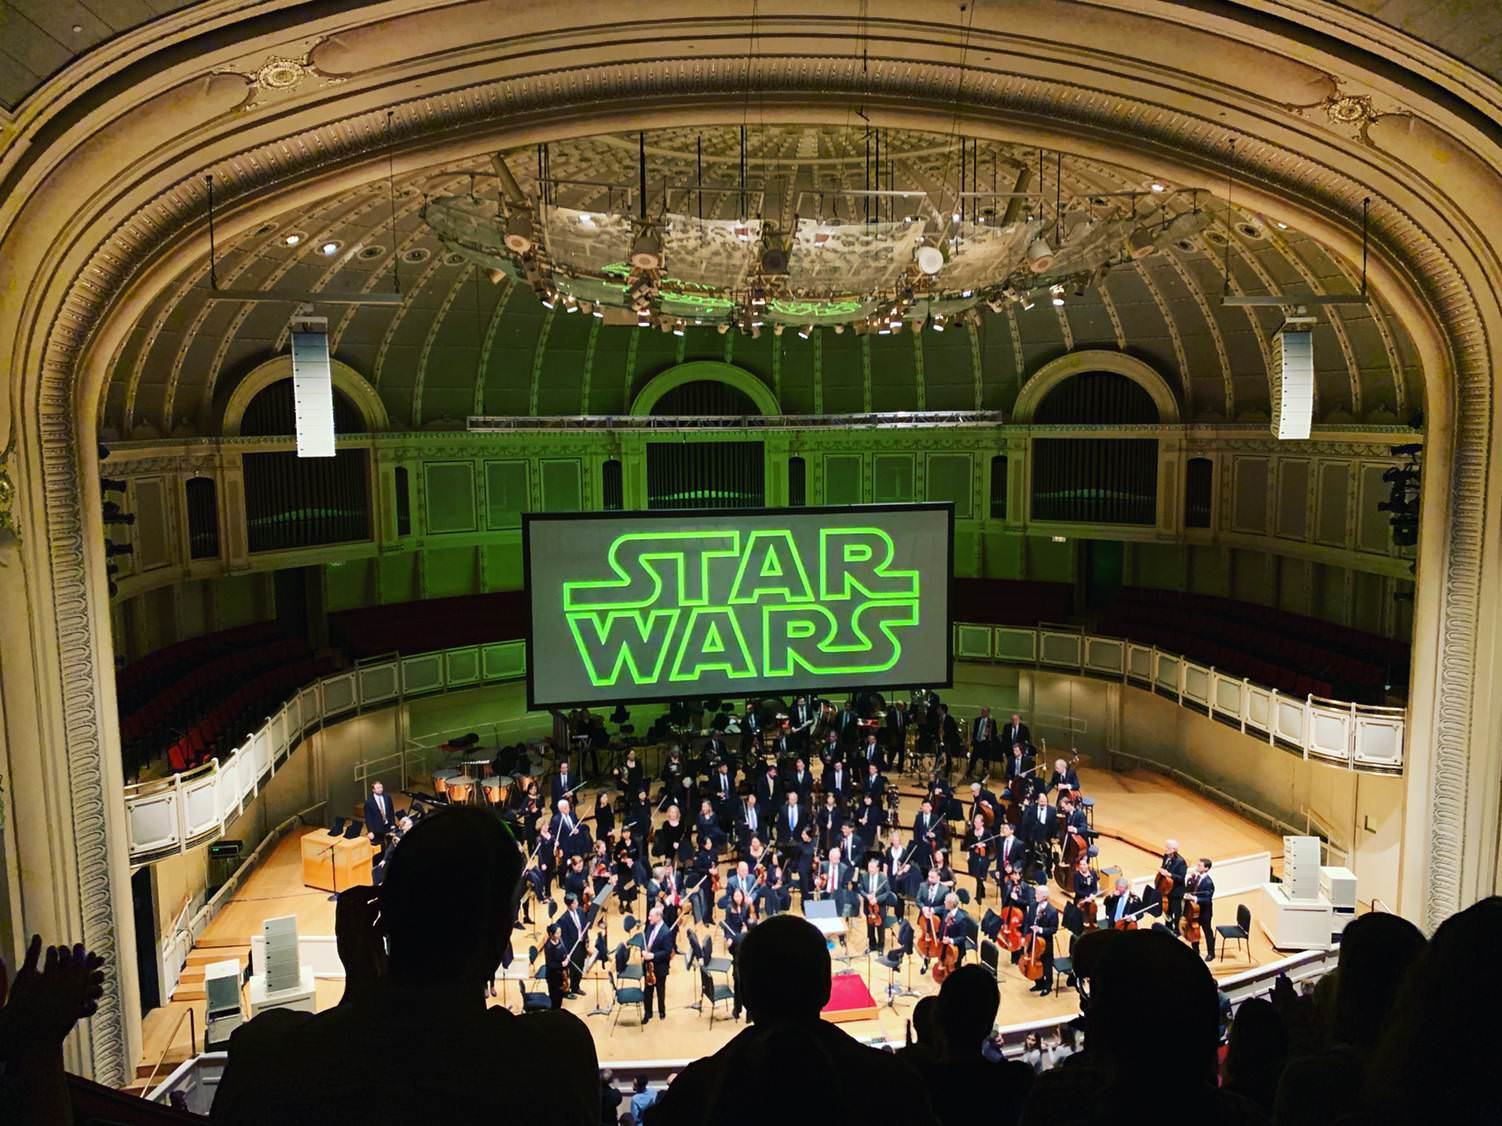 Tonight, I got to experience Empire played by the Chicago Symphony Orchestra